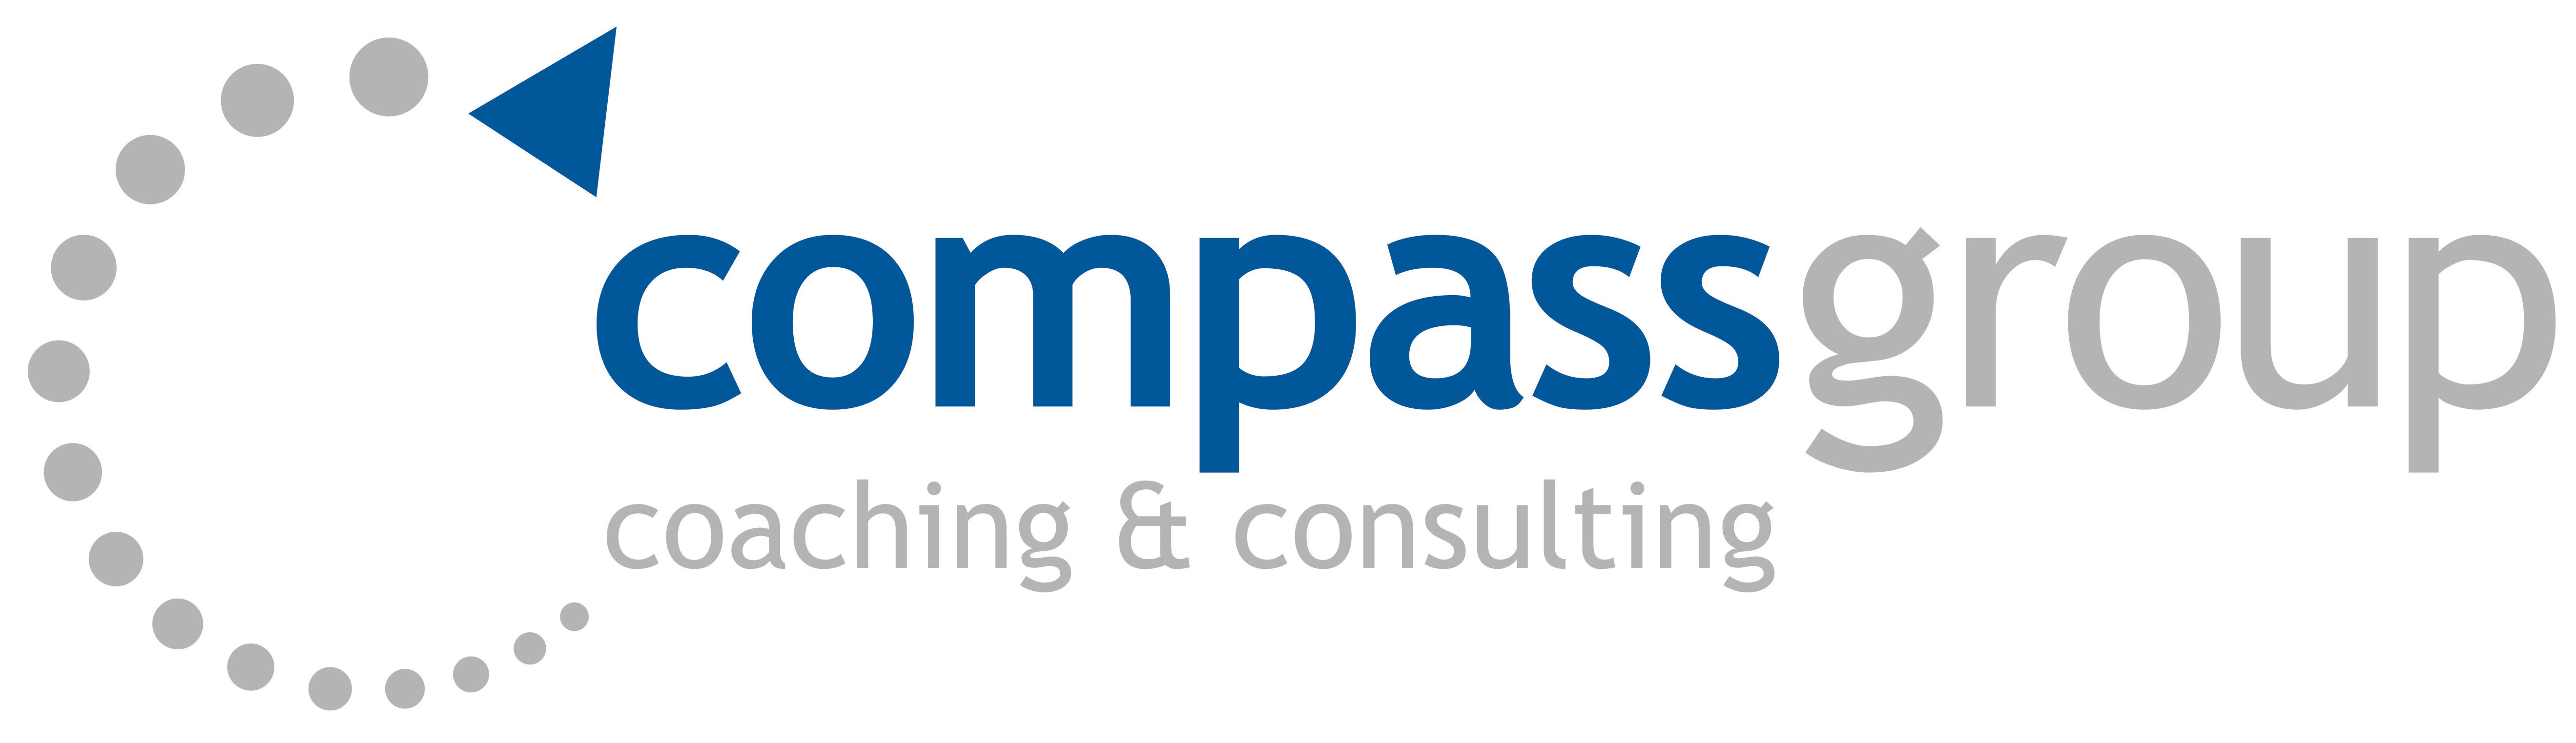 Compass Group Coaching